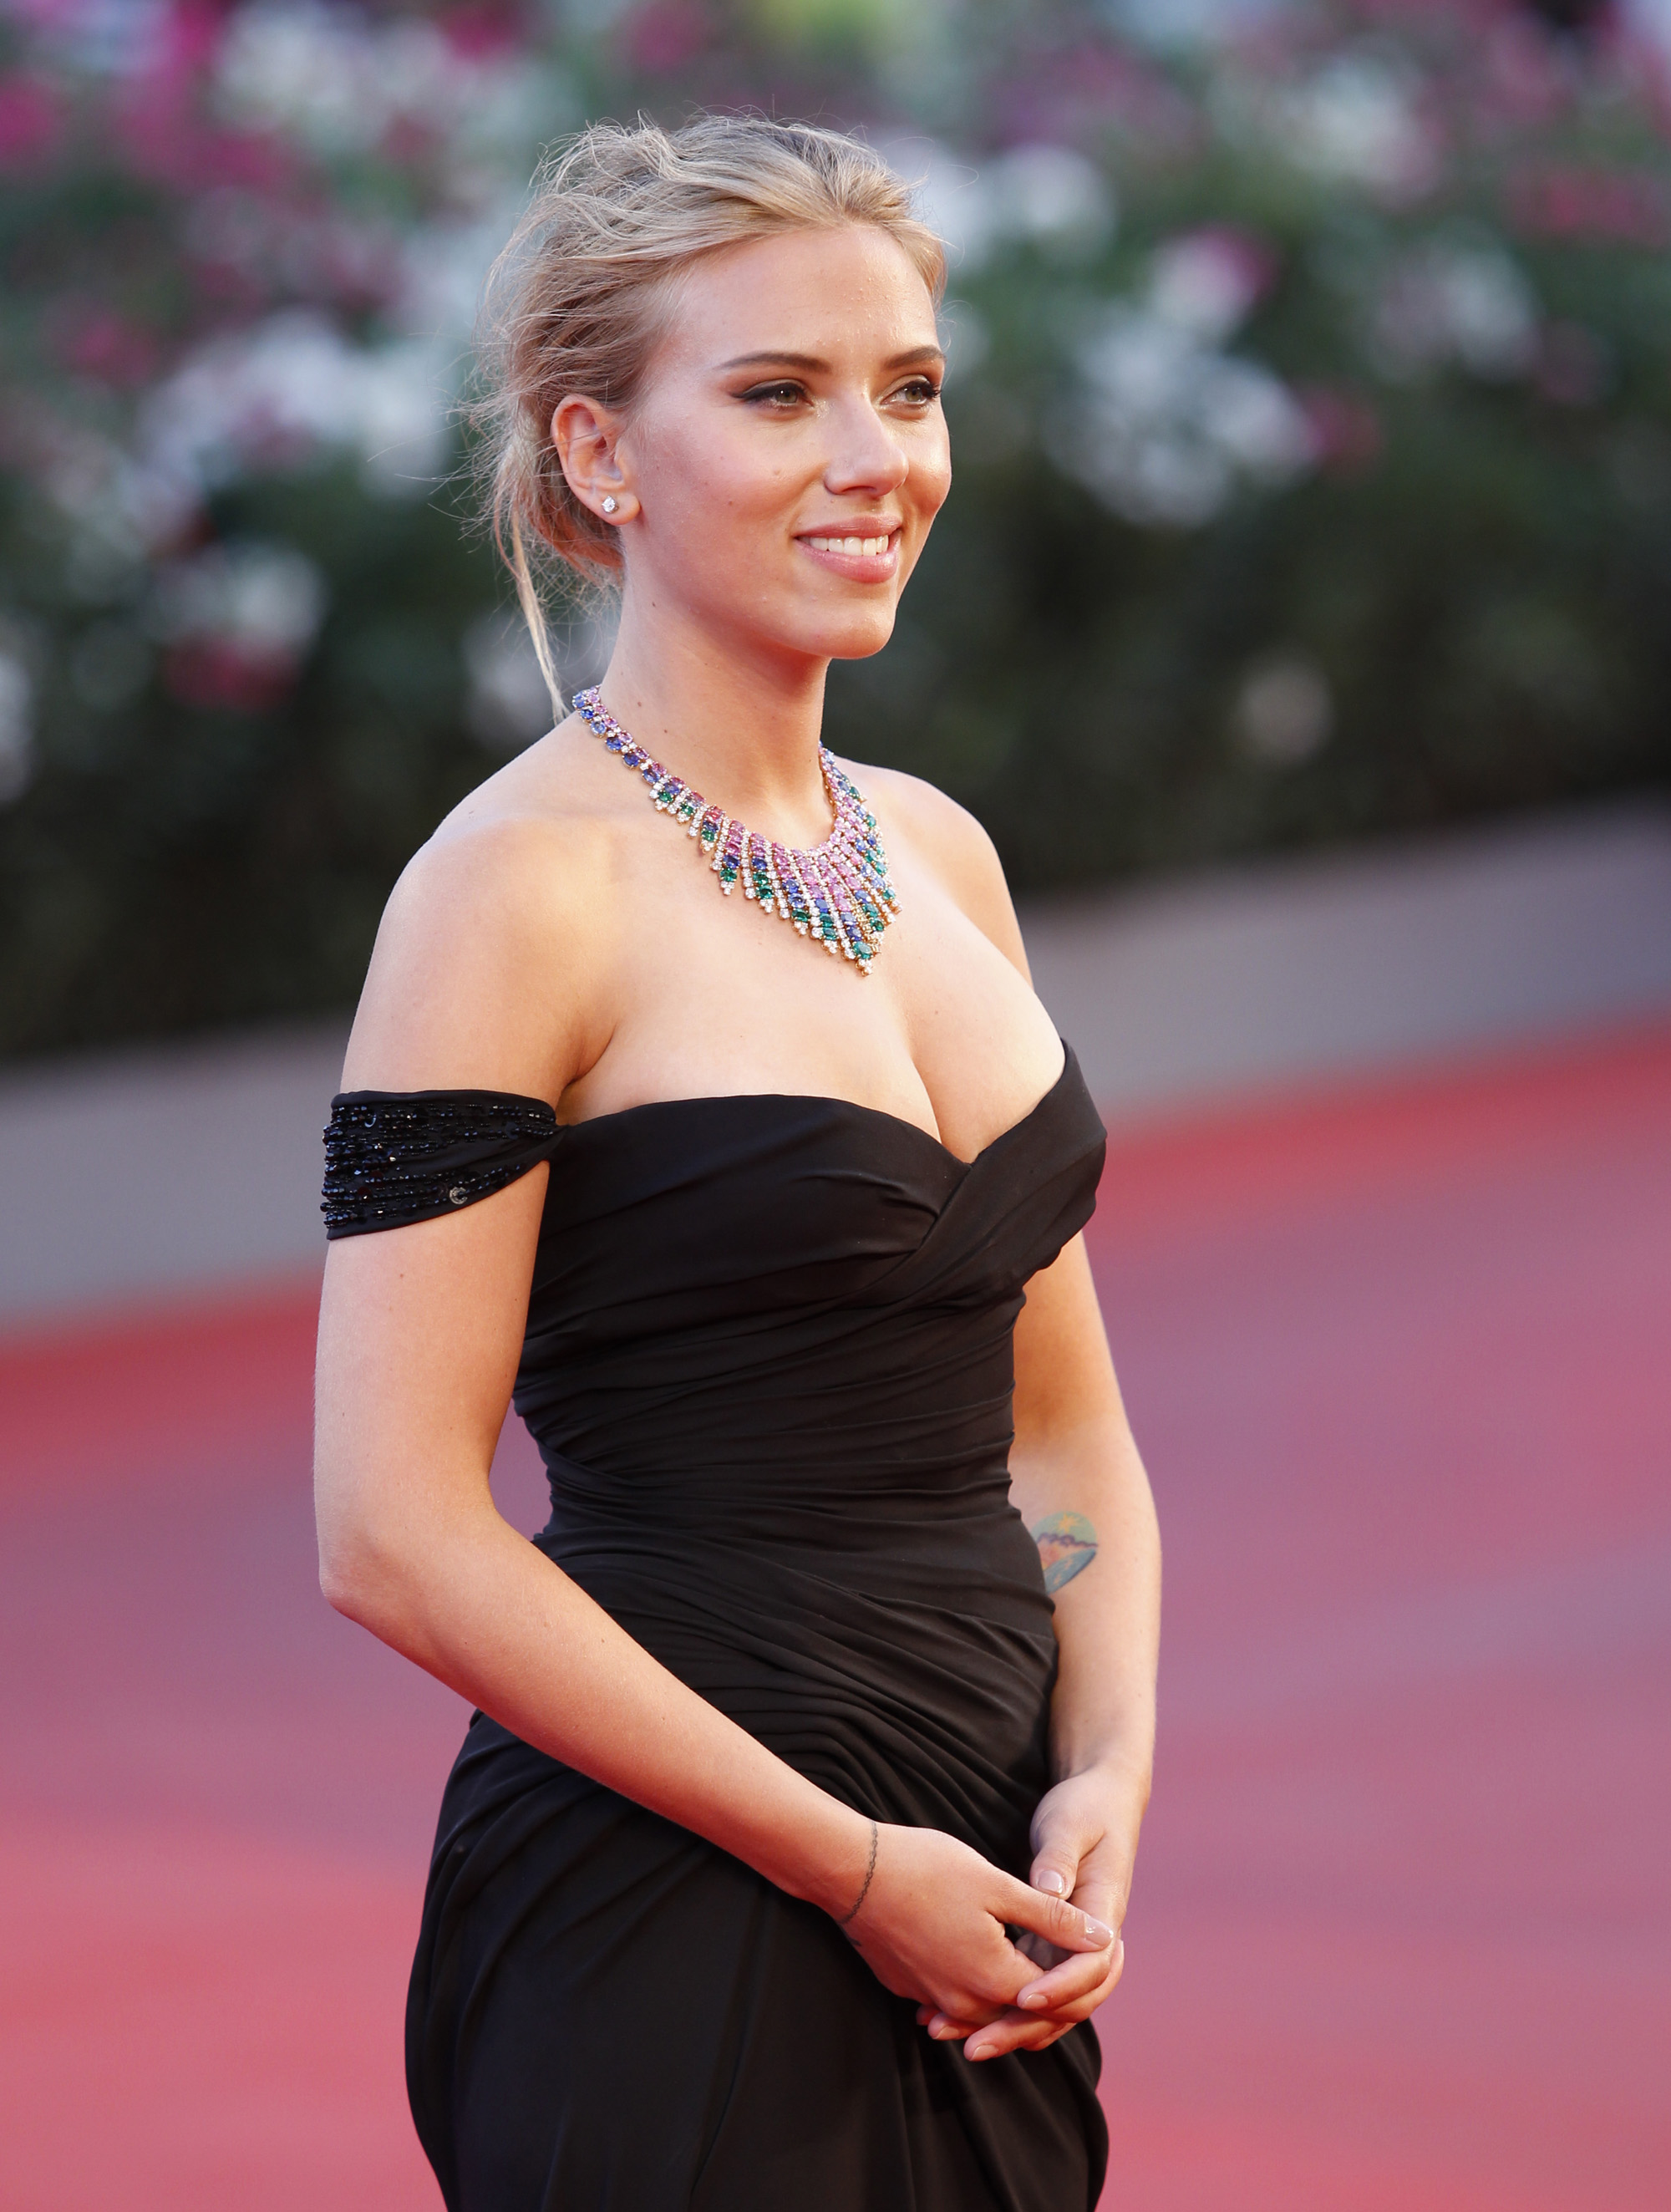 amazing scarlett johansson beautiful smile face mobile free background wallpaper